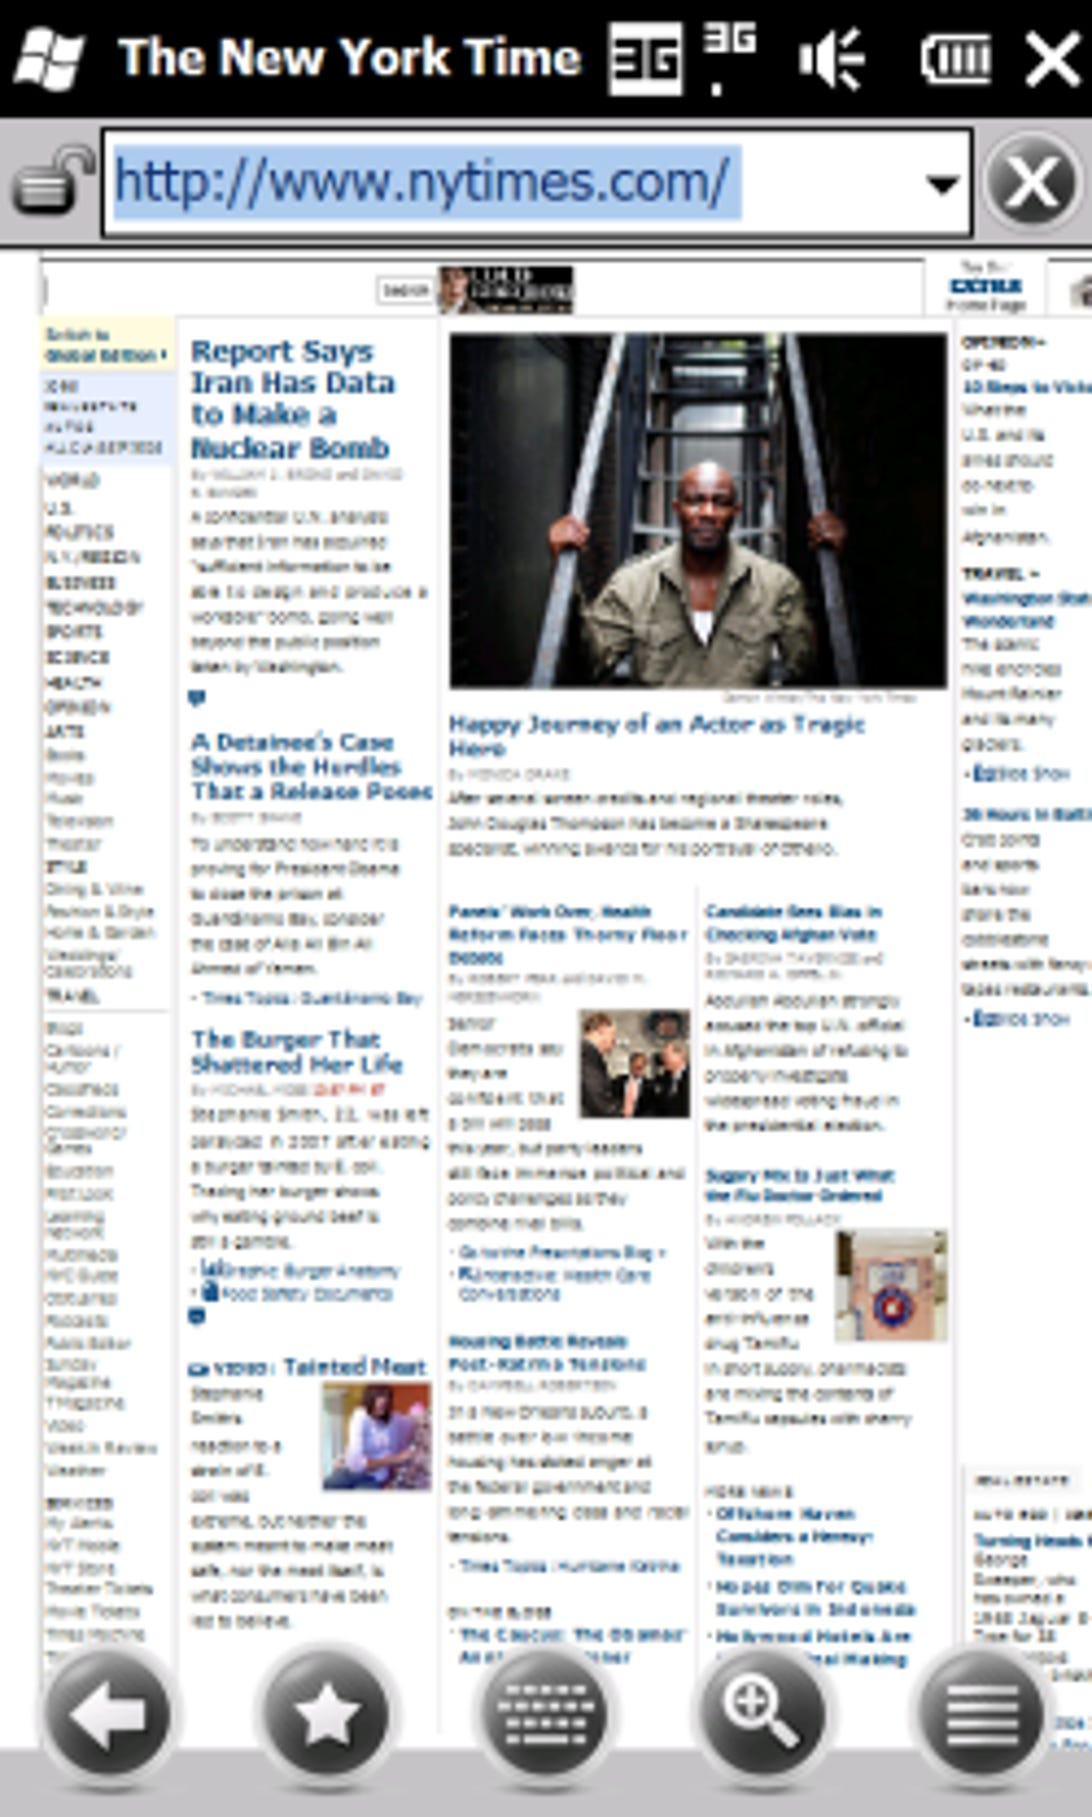 IEMobile6_NYTimes_300px.png